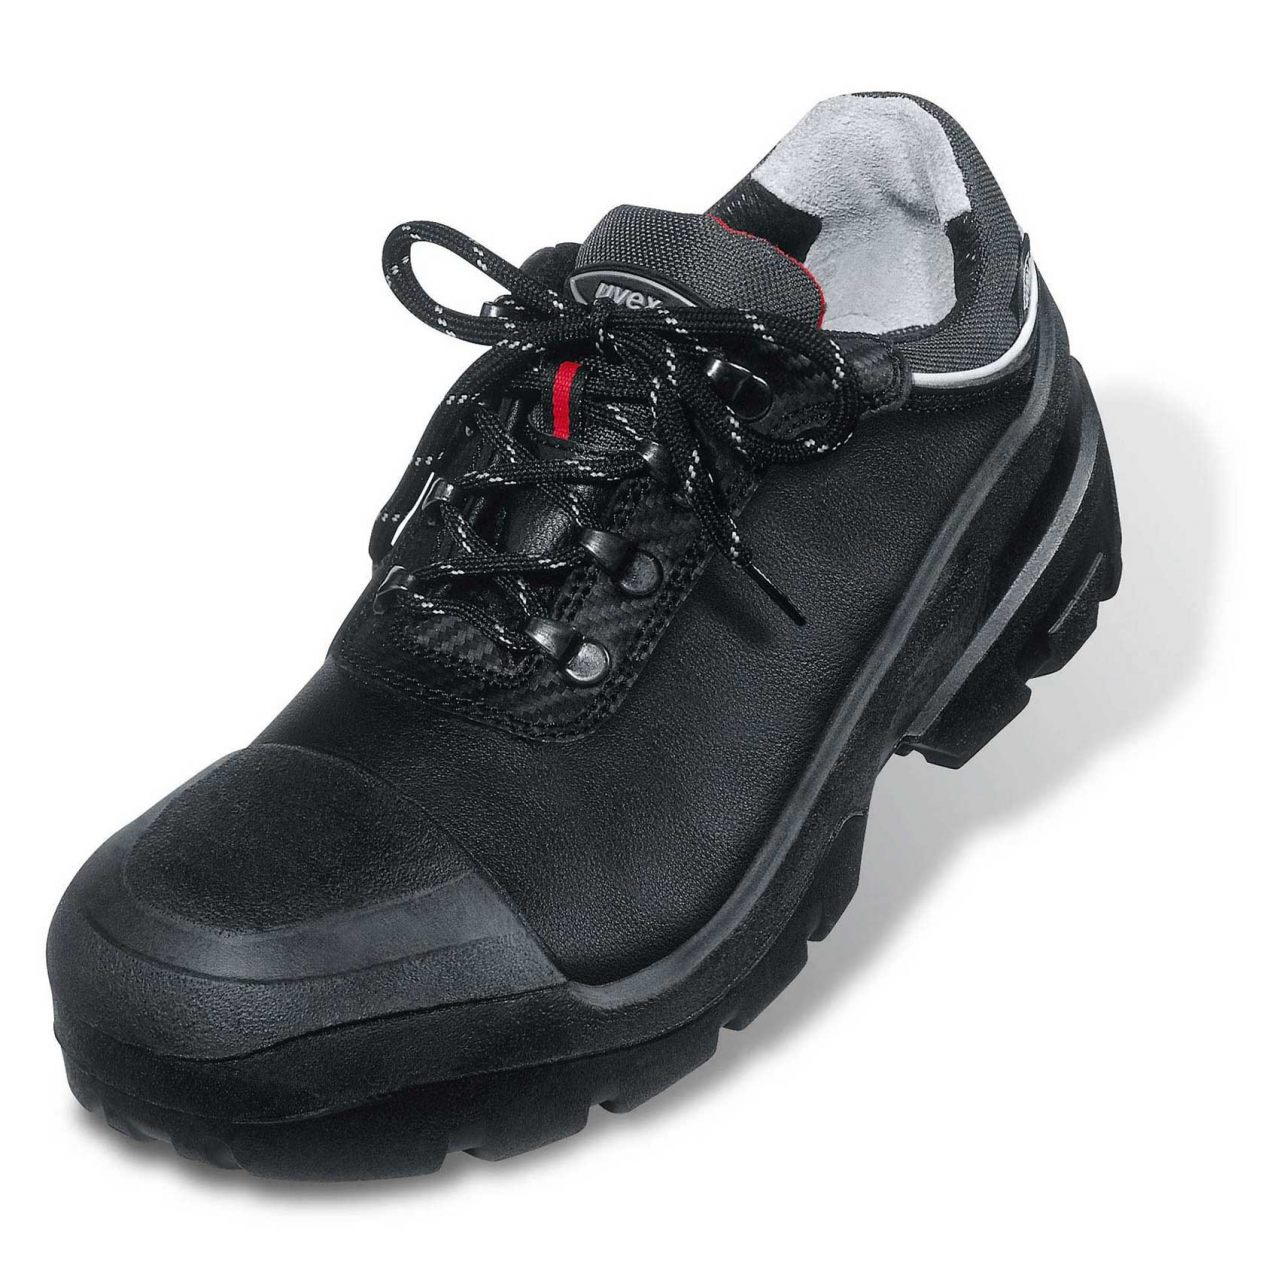 uvex quatro pro s3 src shoe safety footwear uvex safety. Black Bedroom Furniture Sets. Home Design Ideas